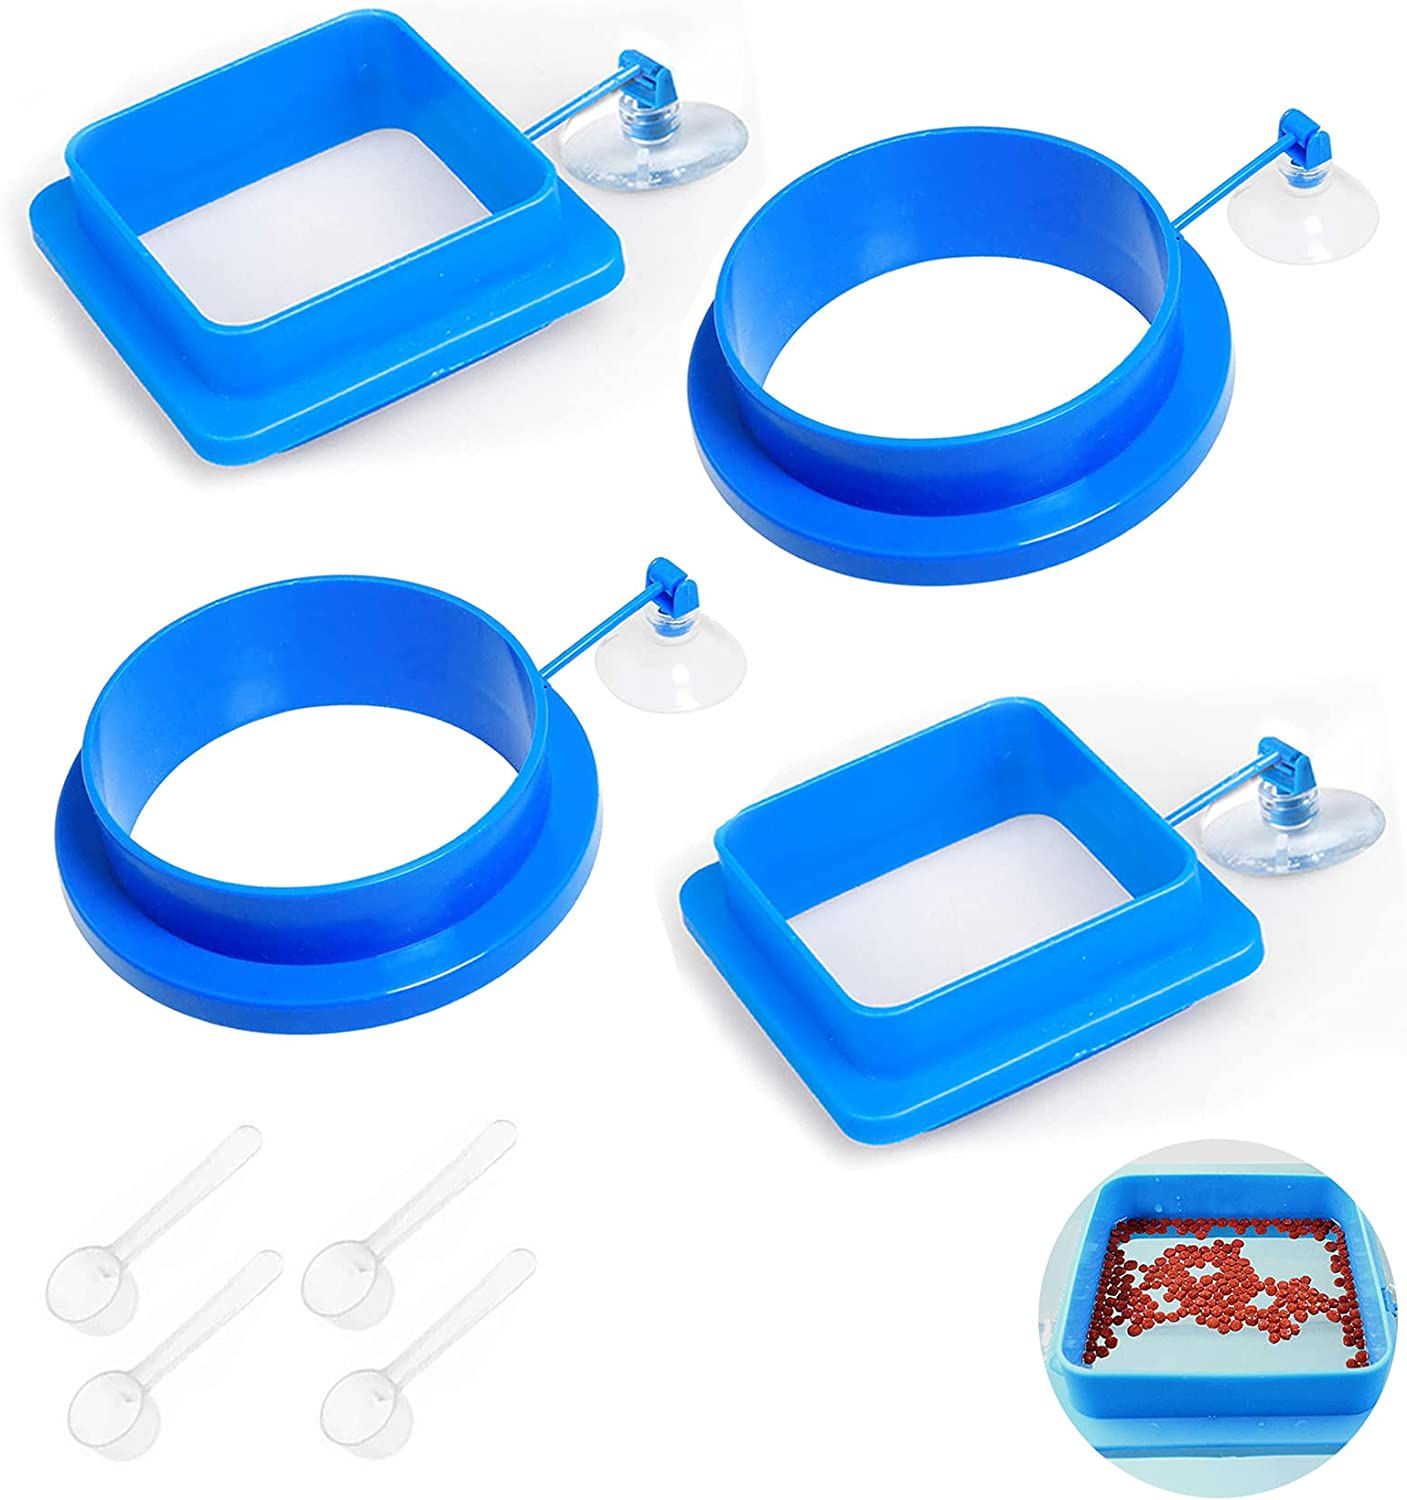 Lucky Interests 4PCS Fish Feeding Ring, Square and Round Thickening Floating Food Feeder, with Suction Cup to Install Aquarium, Blue Fish Food Feeder Circle for Guppy, Goldfish Include 4 Spoons